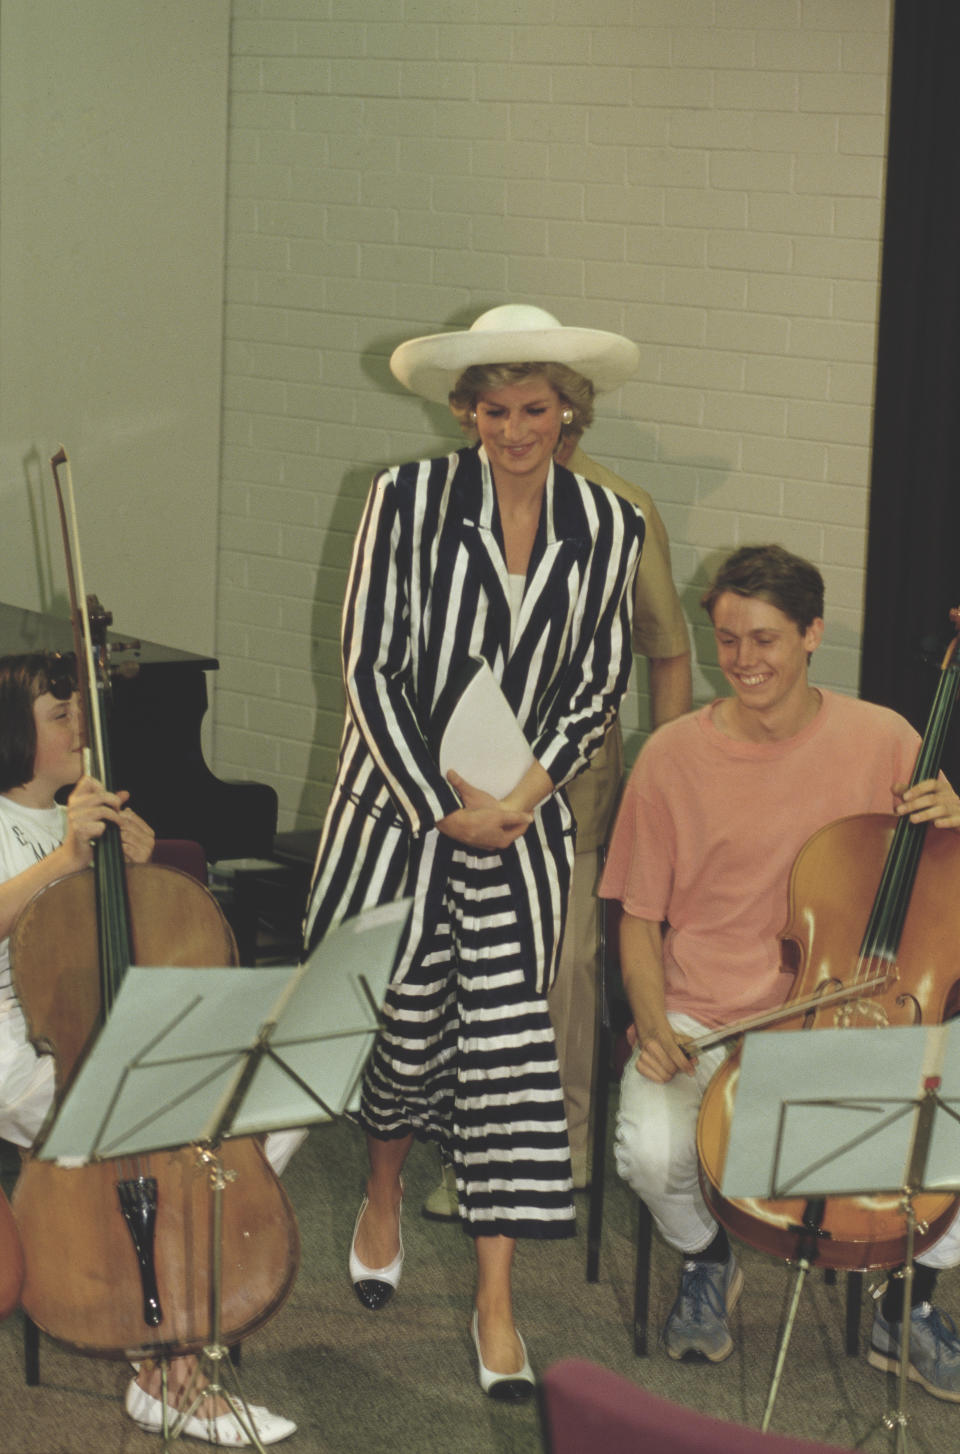 Diana, Princess of Wales  (1961 - 1997) visits the Music College of the Victorian College of the Arts in Melbourne, Australia, January 1988. She is wearing a black and white striped dress by Roland Klein.  (Photo by Jayne Fincher/Princess Diana Archive/Getty Images)